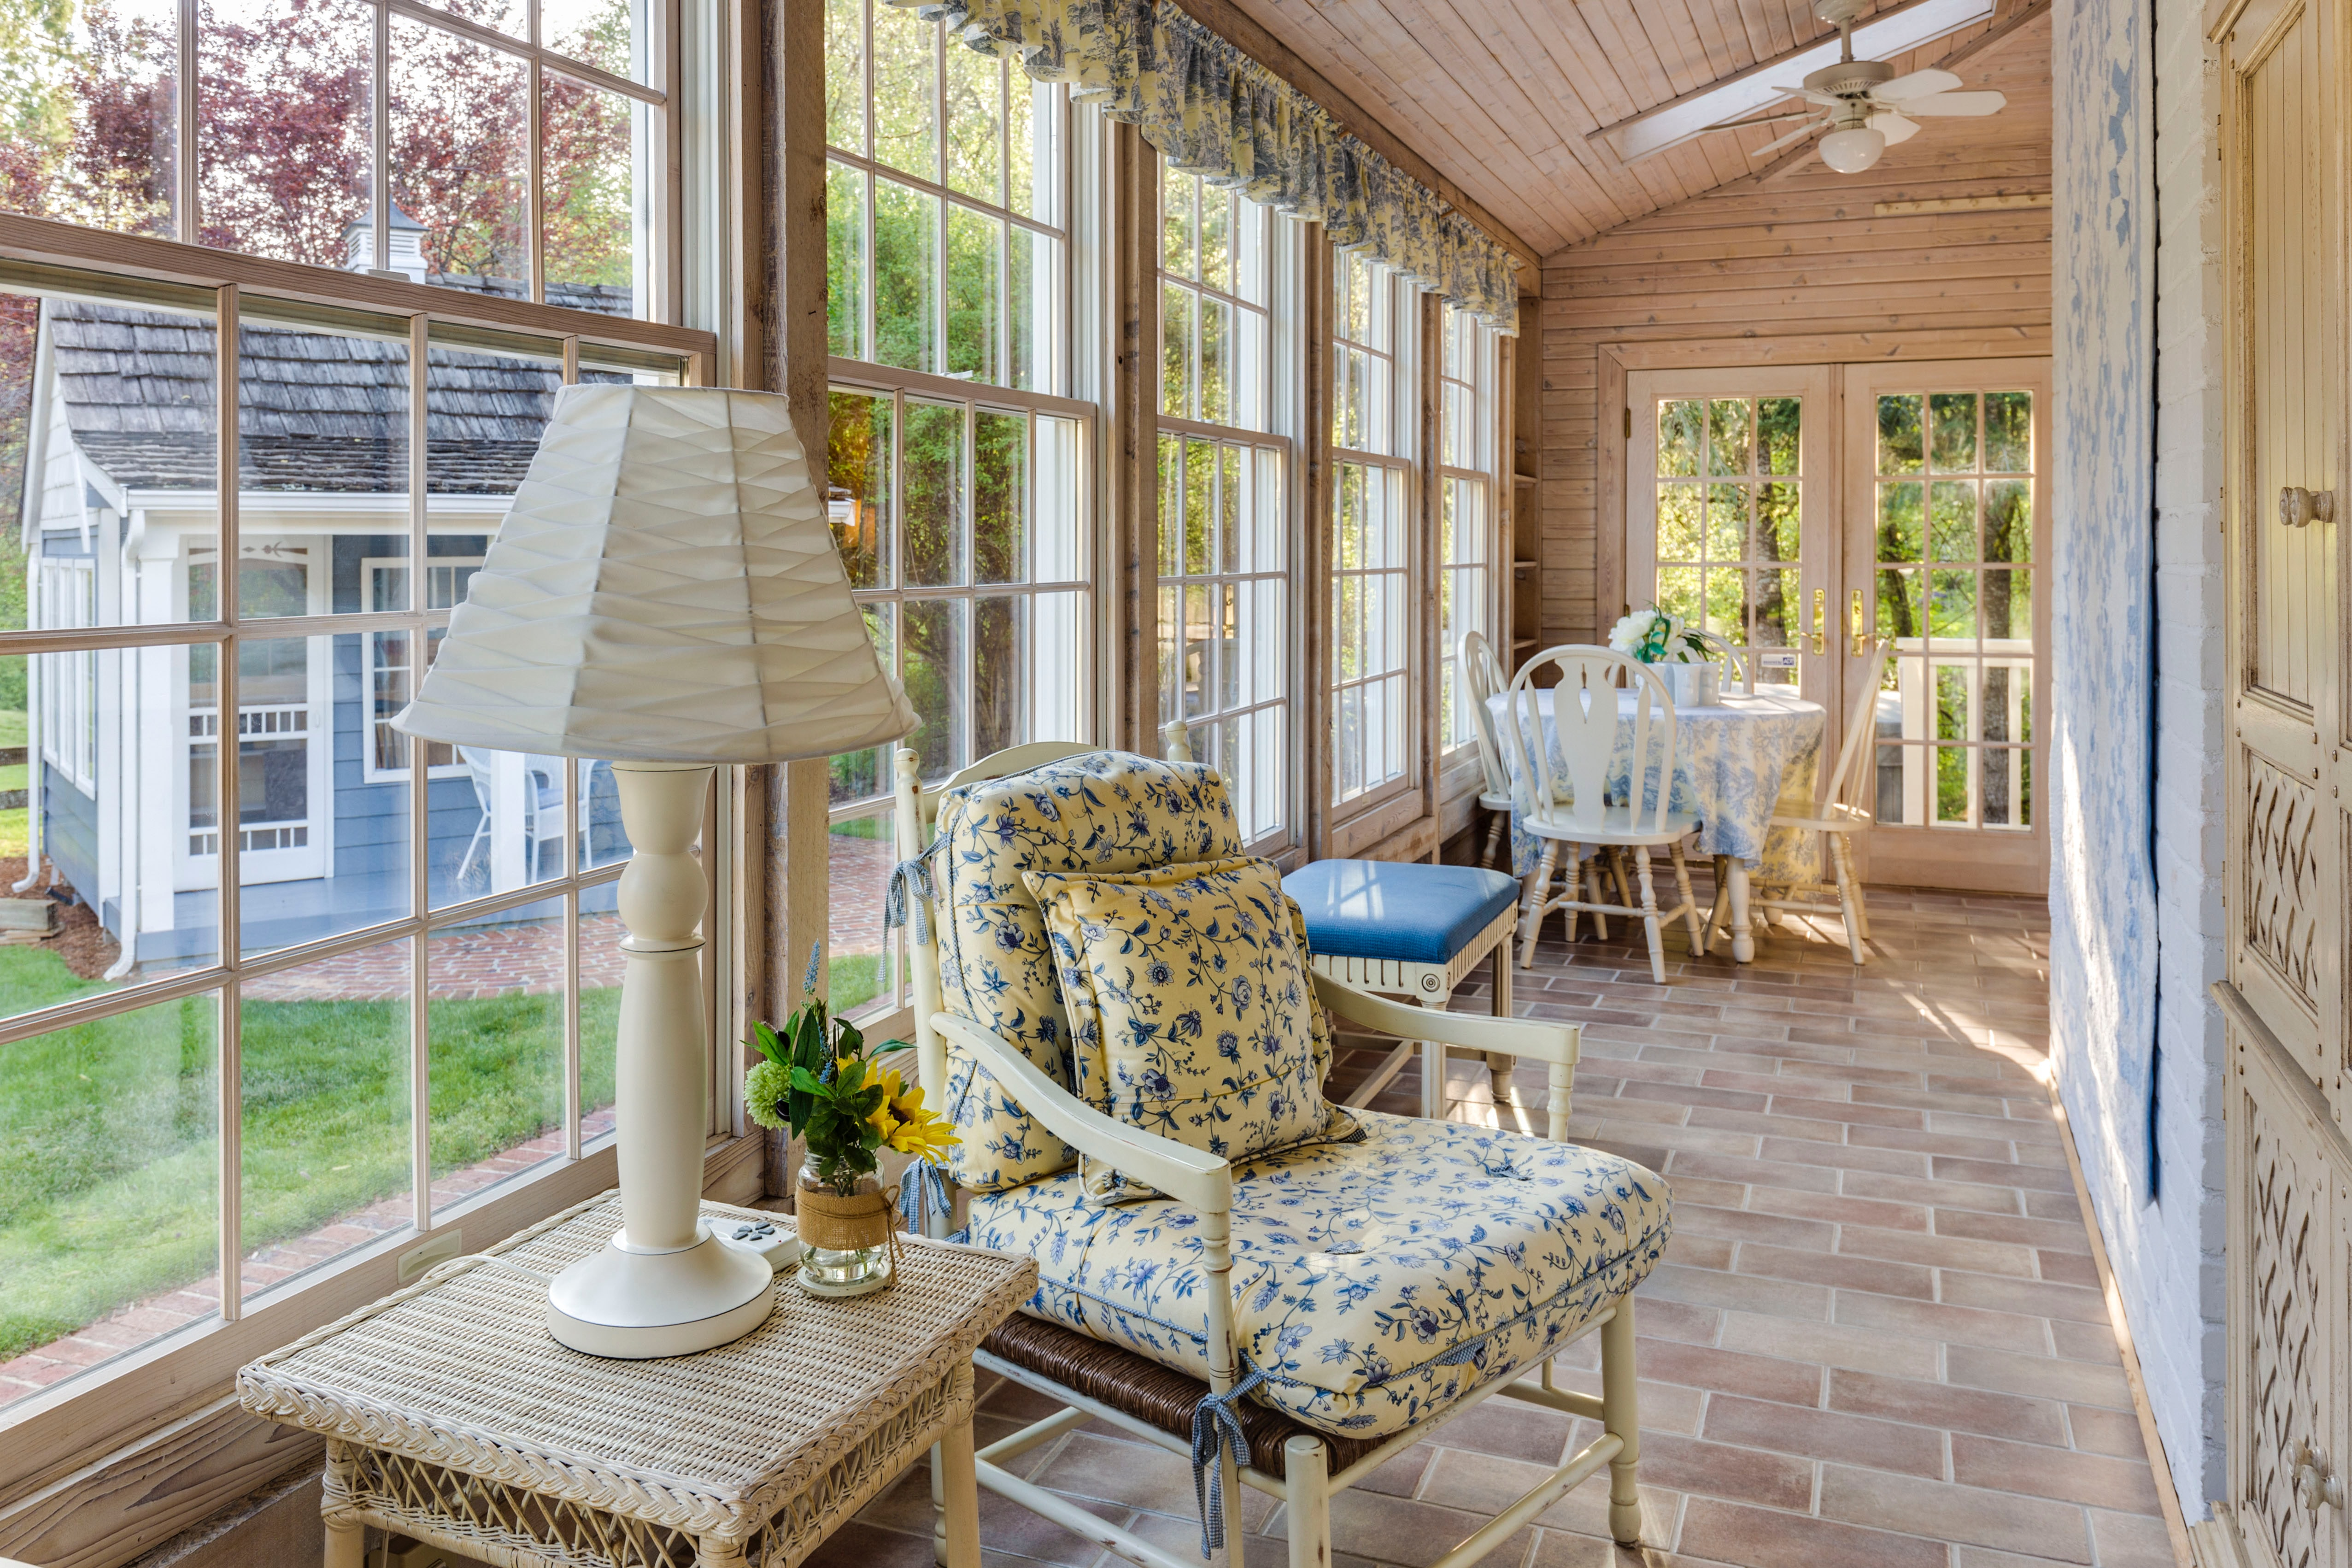 4 Ways to Use House Additions to Increase Space